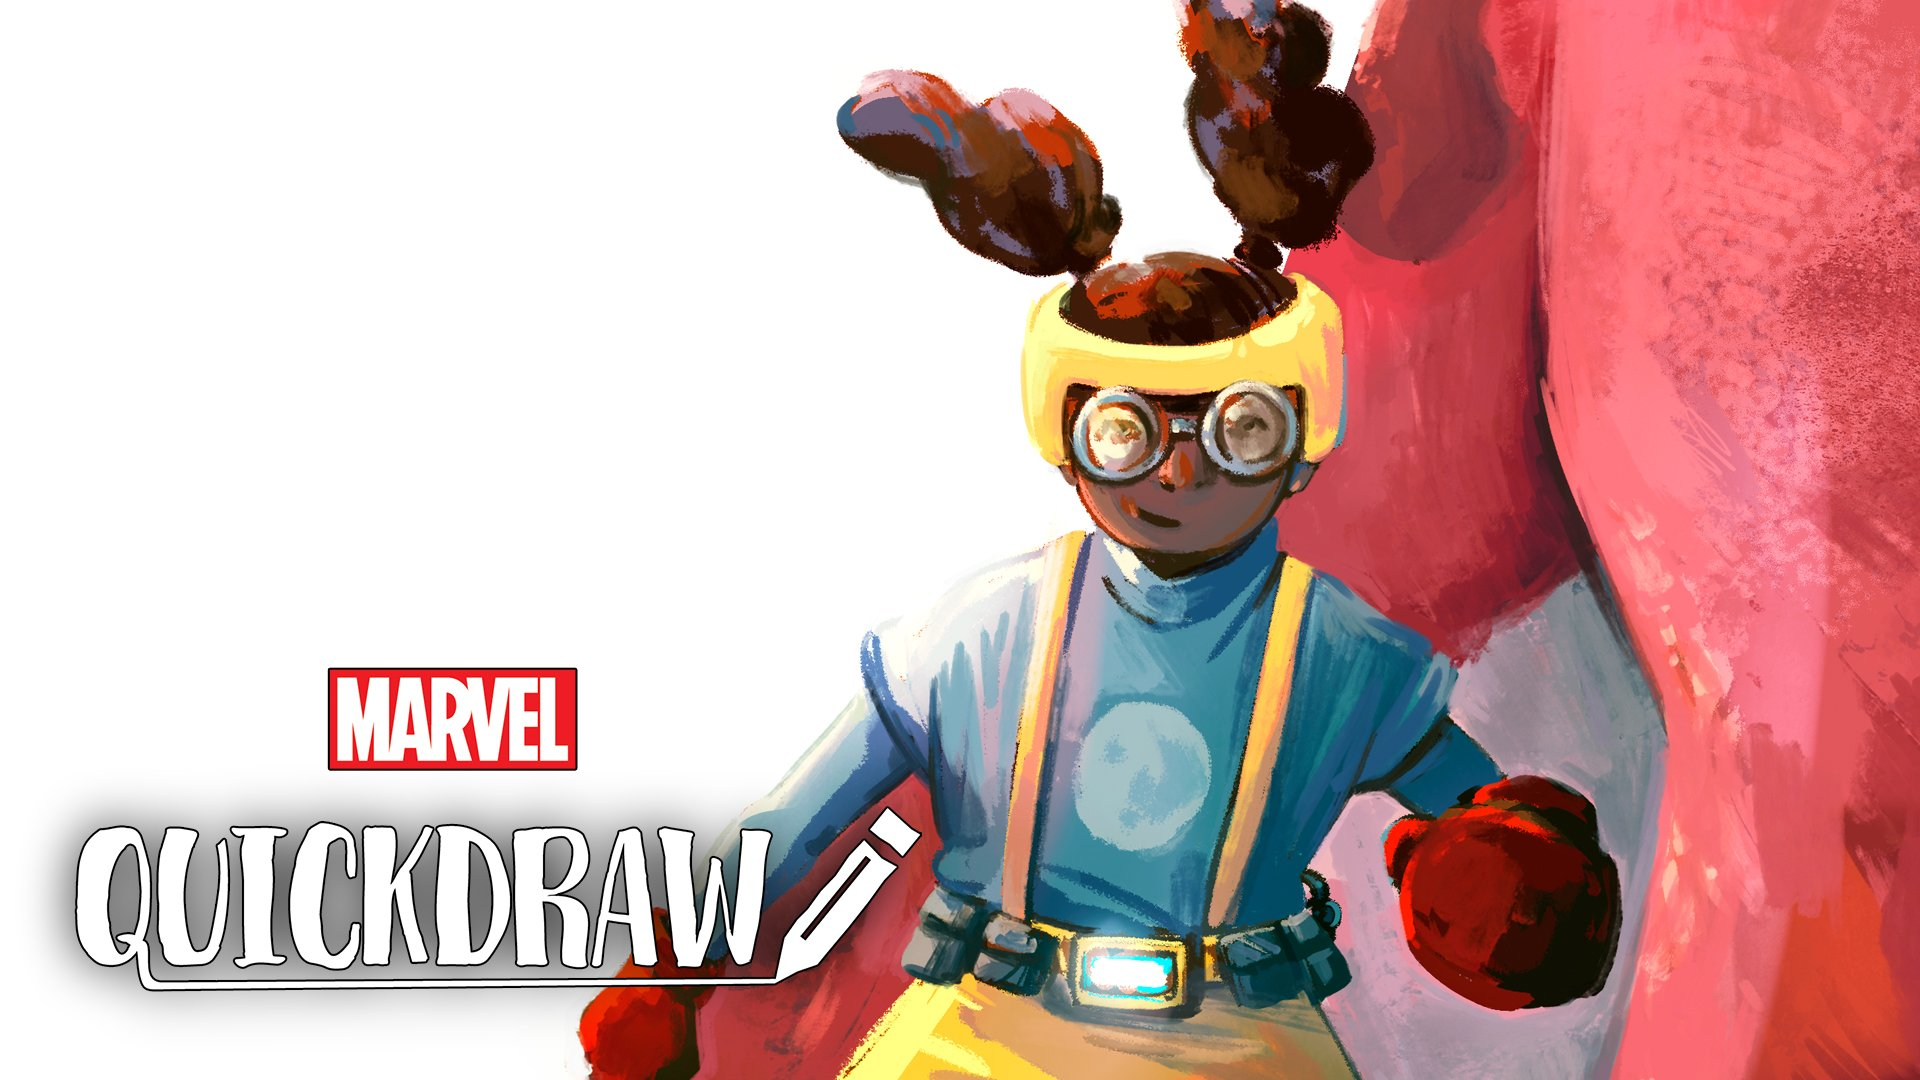 Artist @kniivila brings Moon Girl and Devil Dinosaur to life in a new episode of #MarvelQuickdraw! ✏️ #ad https://t.co/ECXhUKShgZ